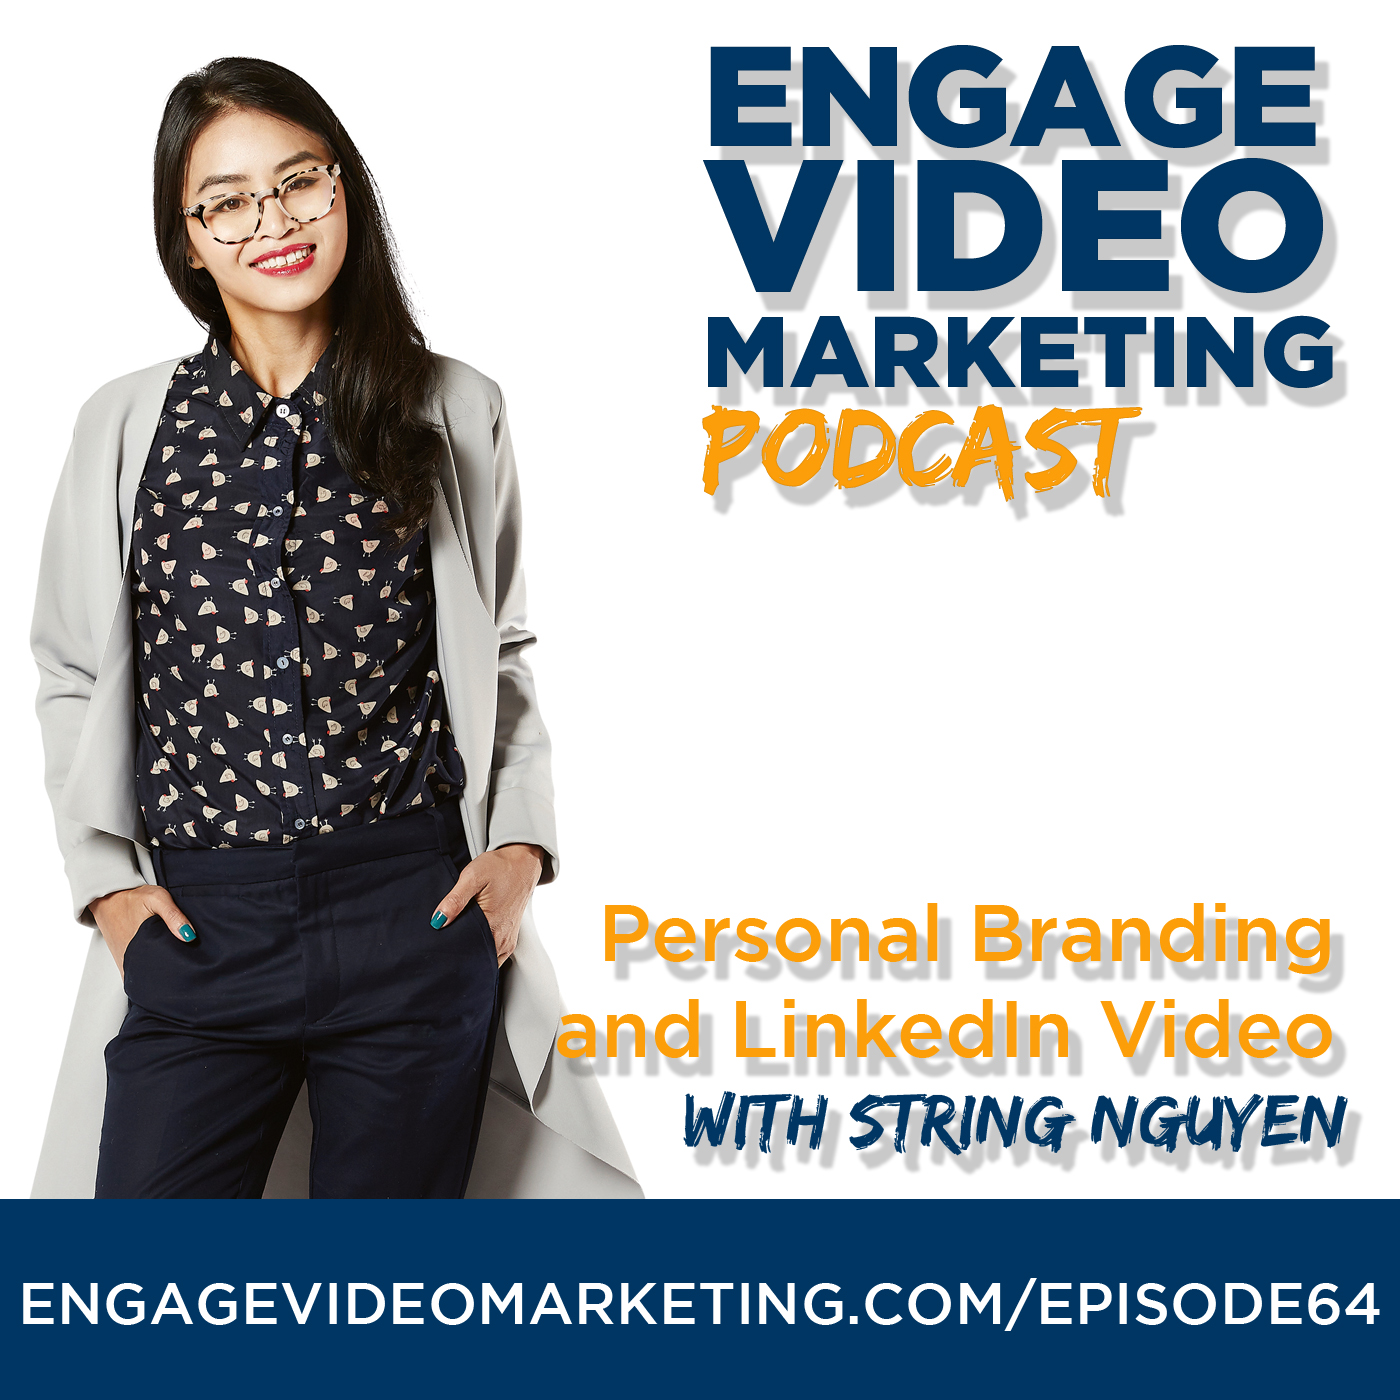 Personal Branding and LinkedIn Video with String Nguyen